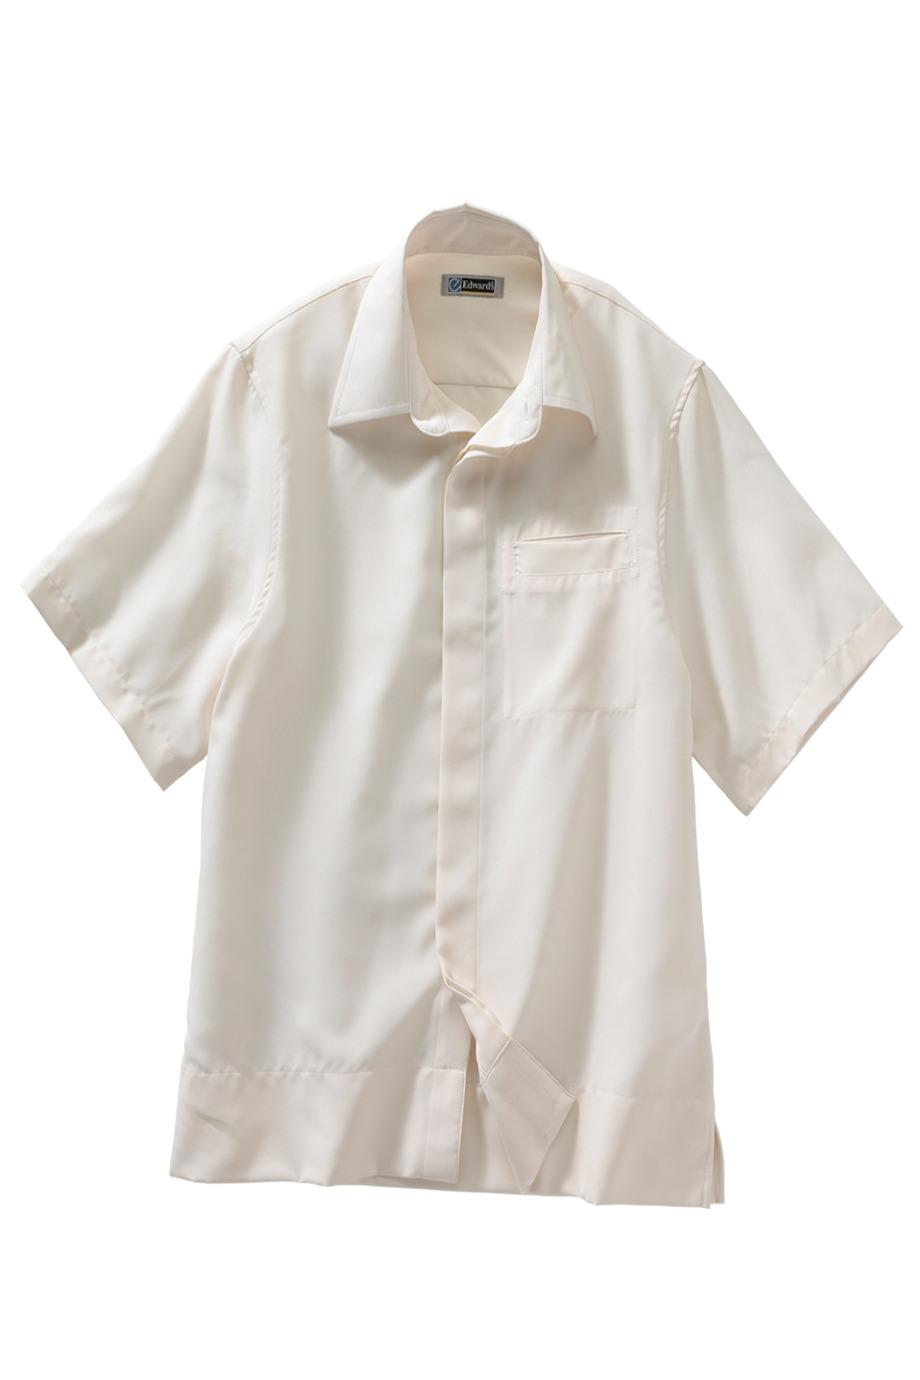 Edwards Garment 1031 - Batiste Camp Shirt